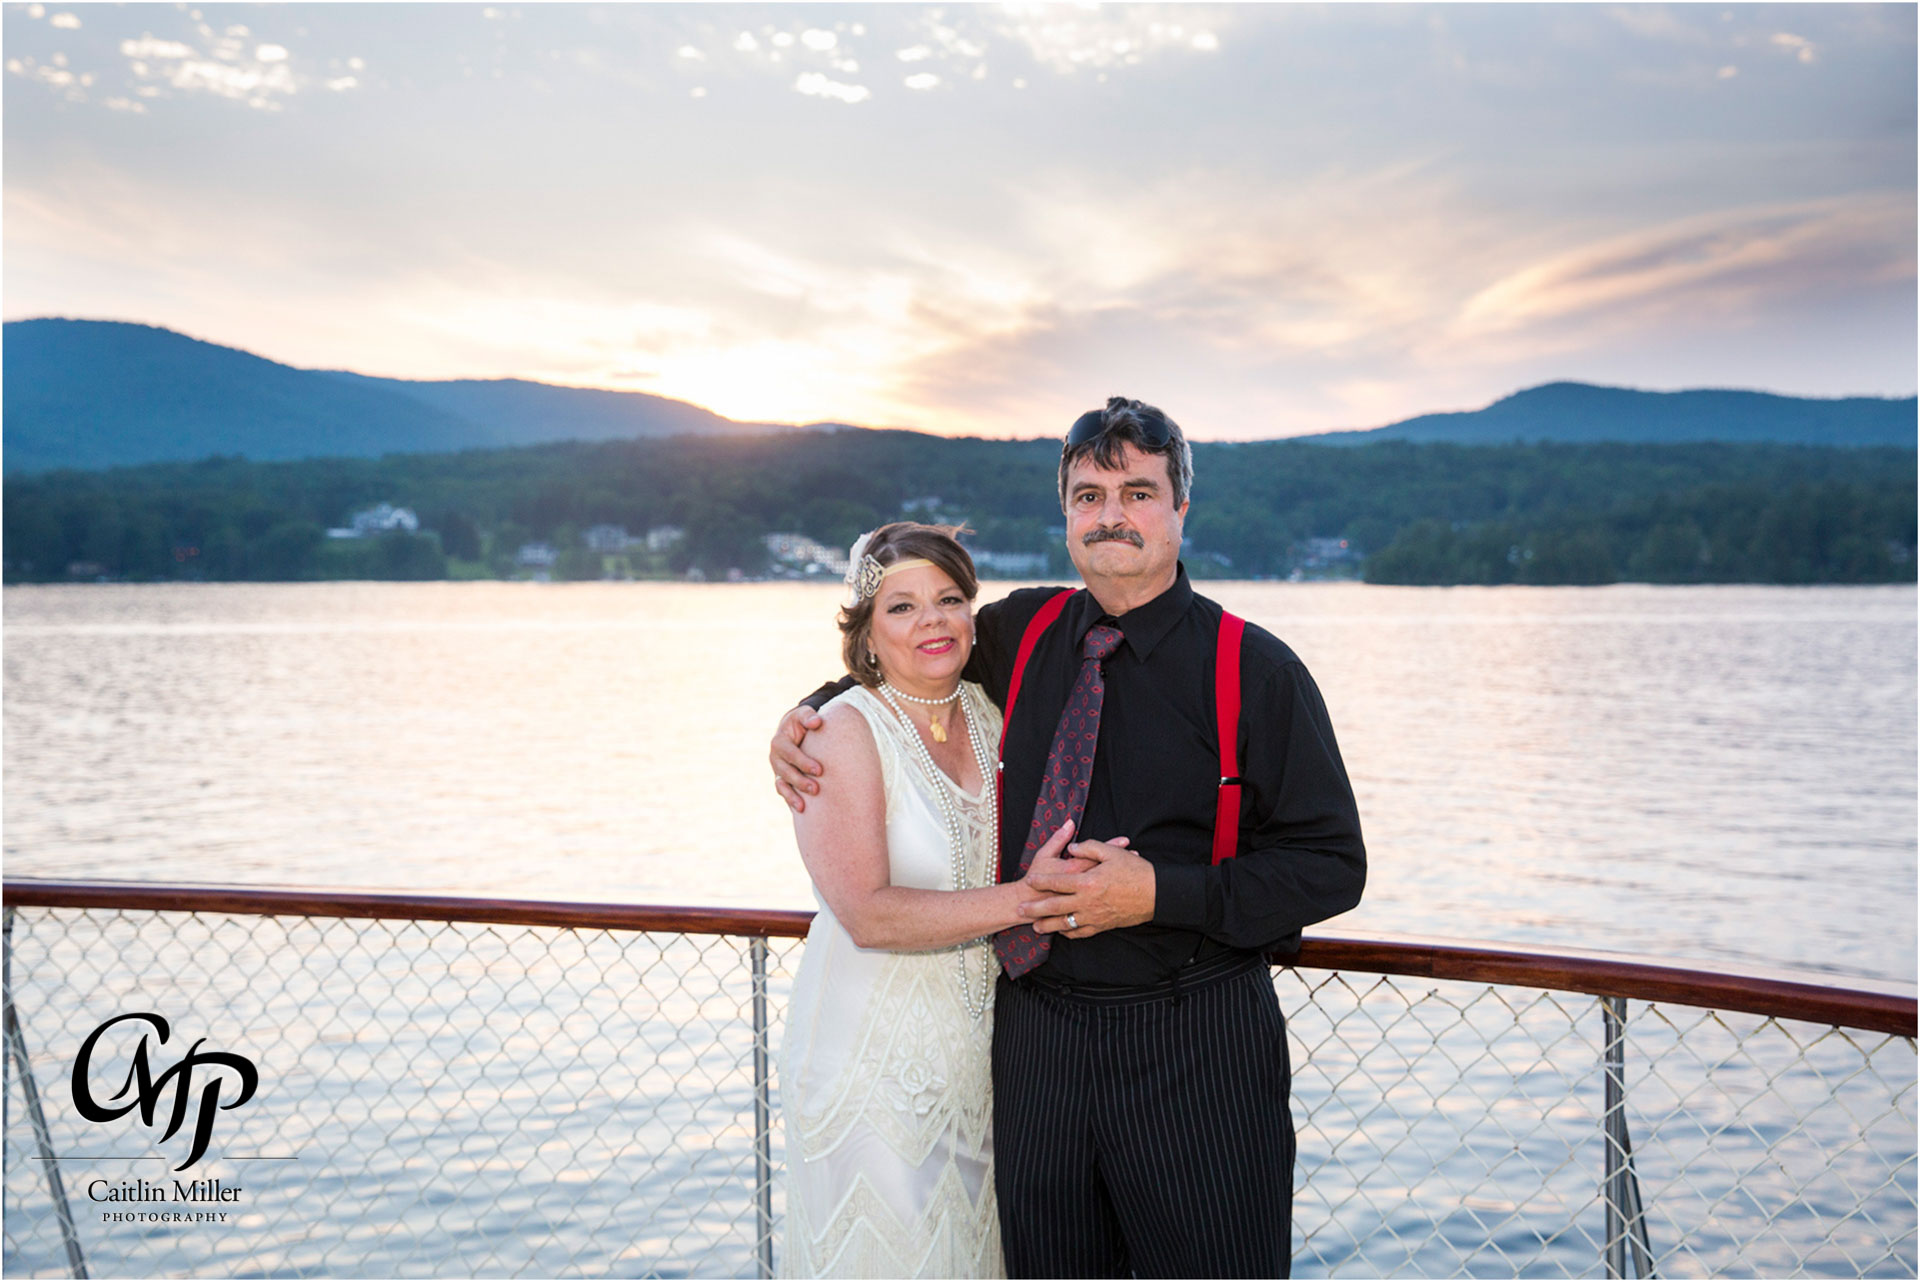 bombard-34.jpg from Jan and Robert's vow renewal on shoreline Cruise's Adirondac Boat on Lake George, NY by Saratoga Wedding Photographer Caitlin Miller Photography. Lake George Wedding Photographer. Stamford wedding photographer. Albany wedding photographer. Shoreline Cruises Wedding Photographer. Saratoga Wedding Photographer